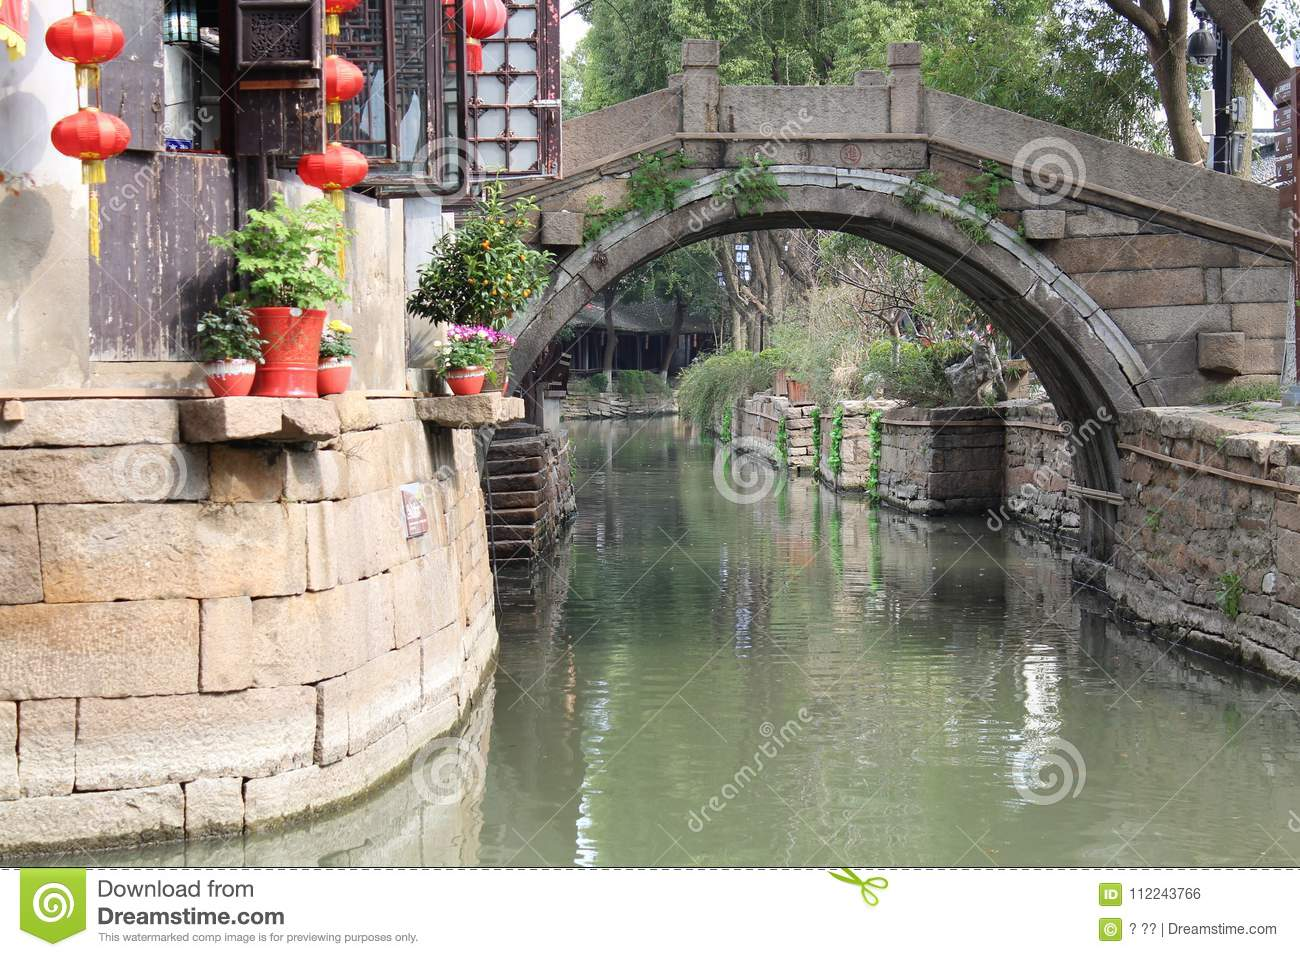 Download Calm Morning In South River Of City SUZHOU China Stock Photo - Image of china, oriental: 112243766